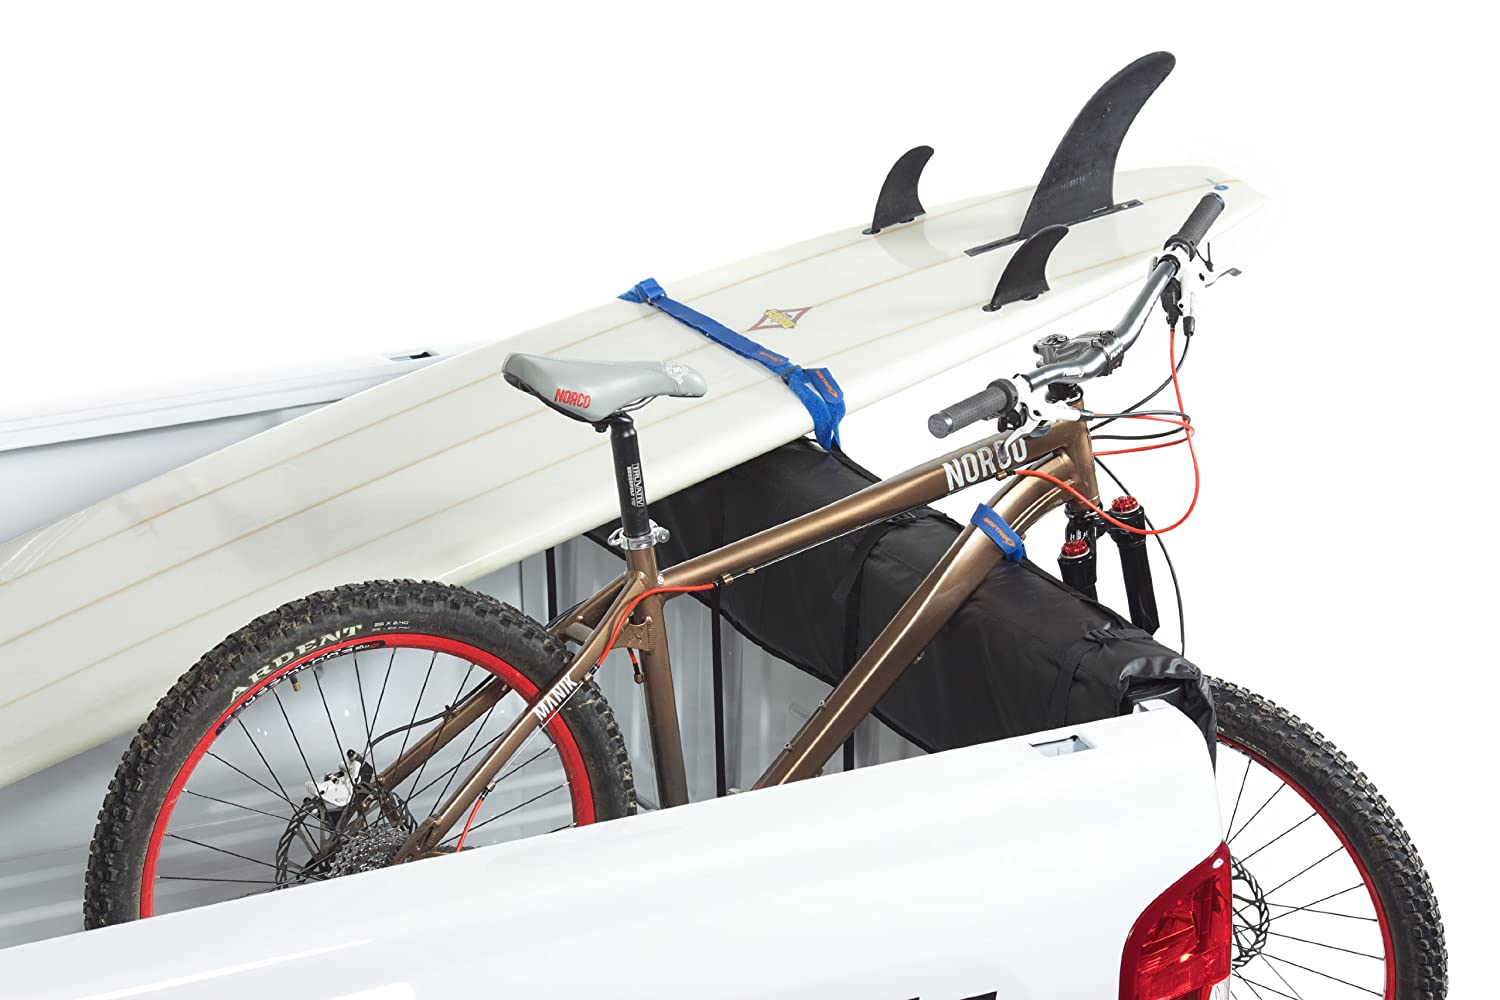 Softride 26457 A Pick Up Shuttle Pad Black 61 Tailgate Bike Rack for Bikes Surfboards or SUP